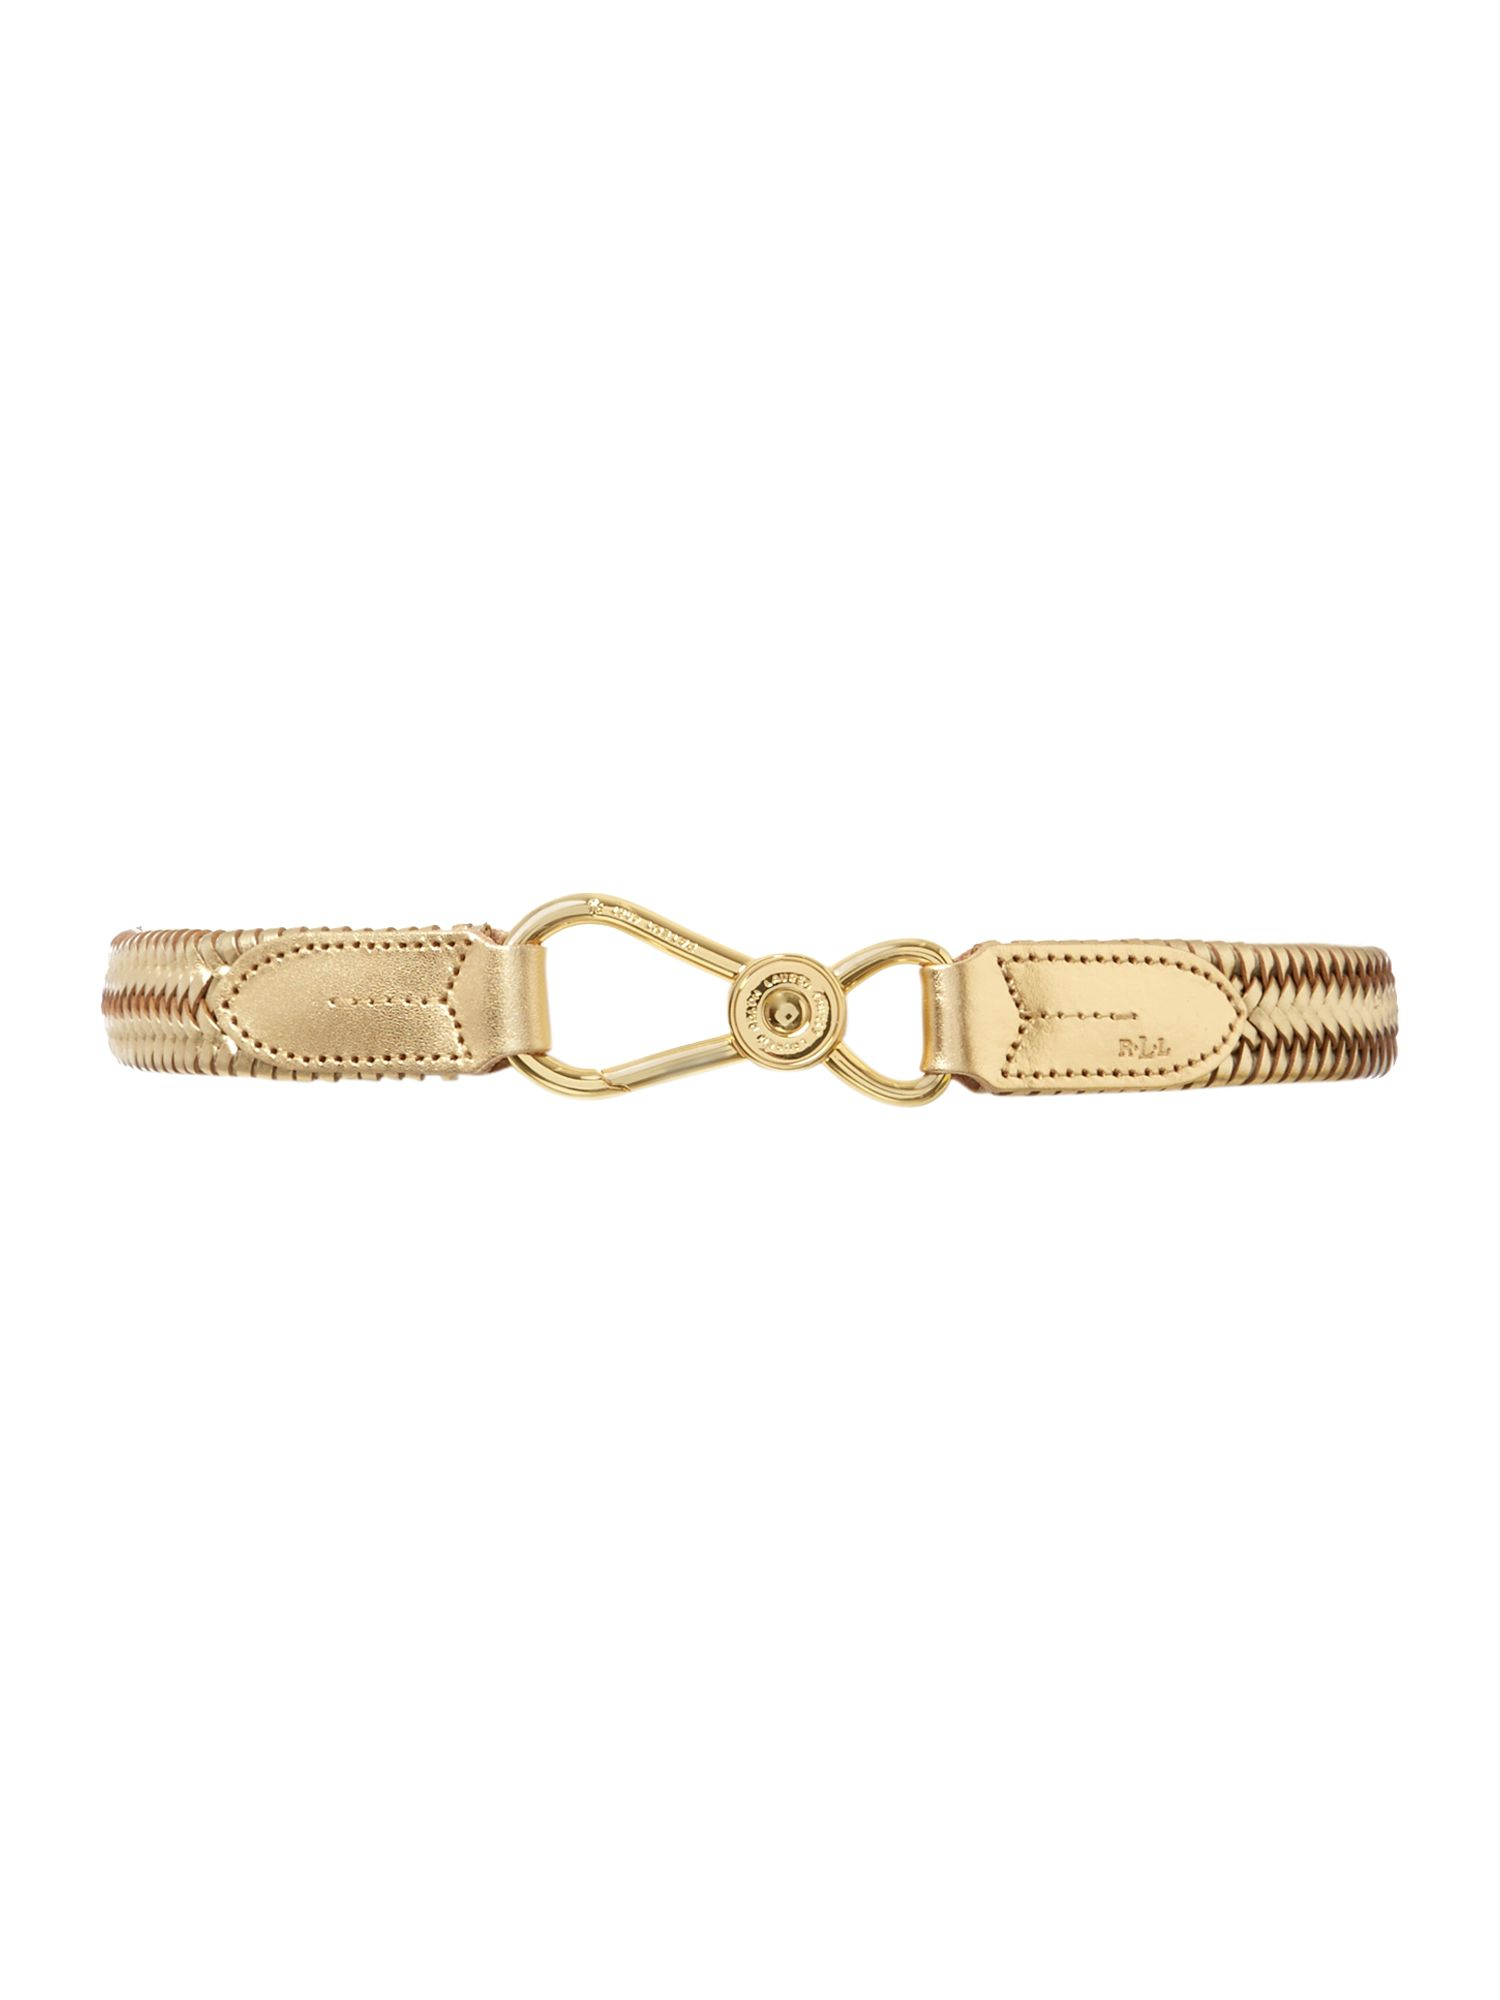 Stretch belt with nautical style hook